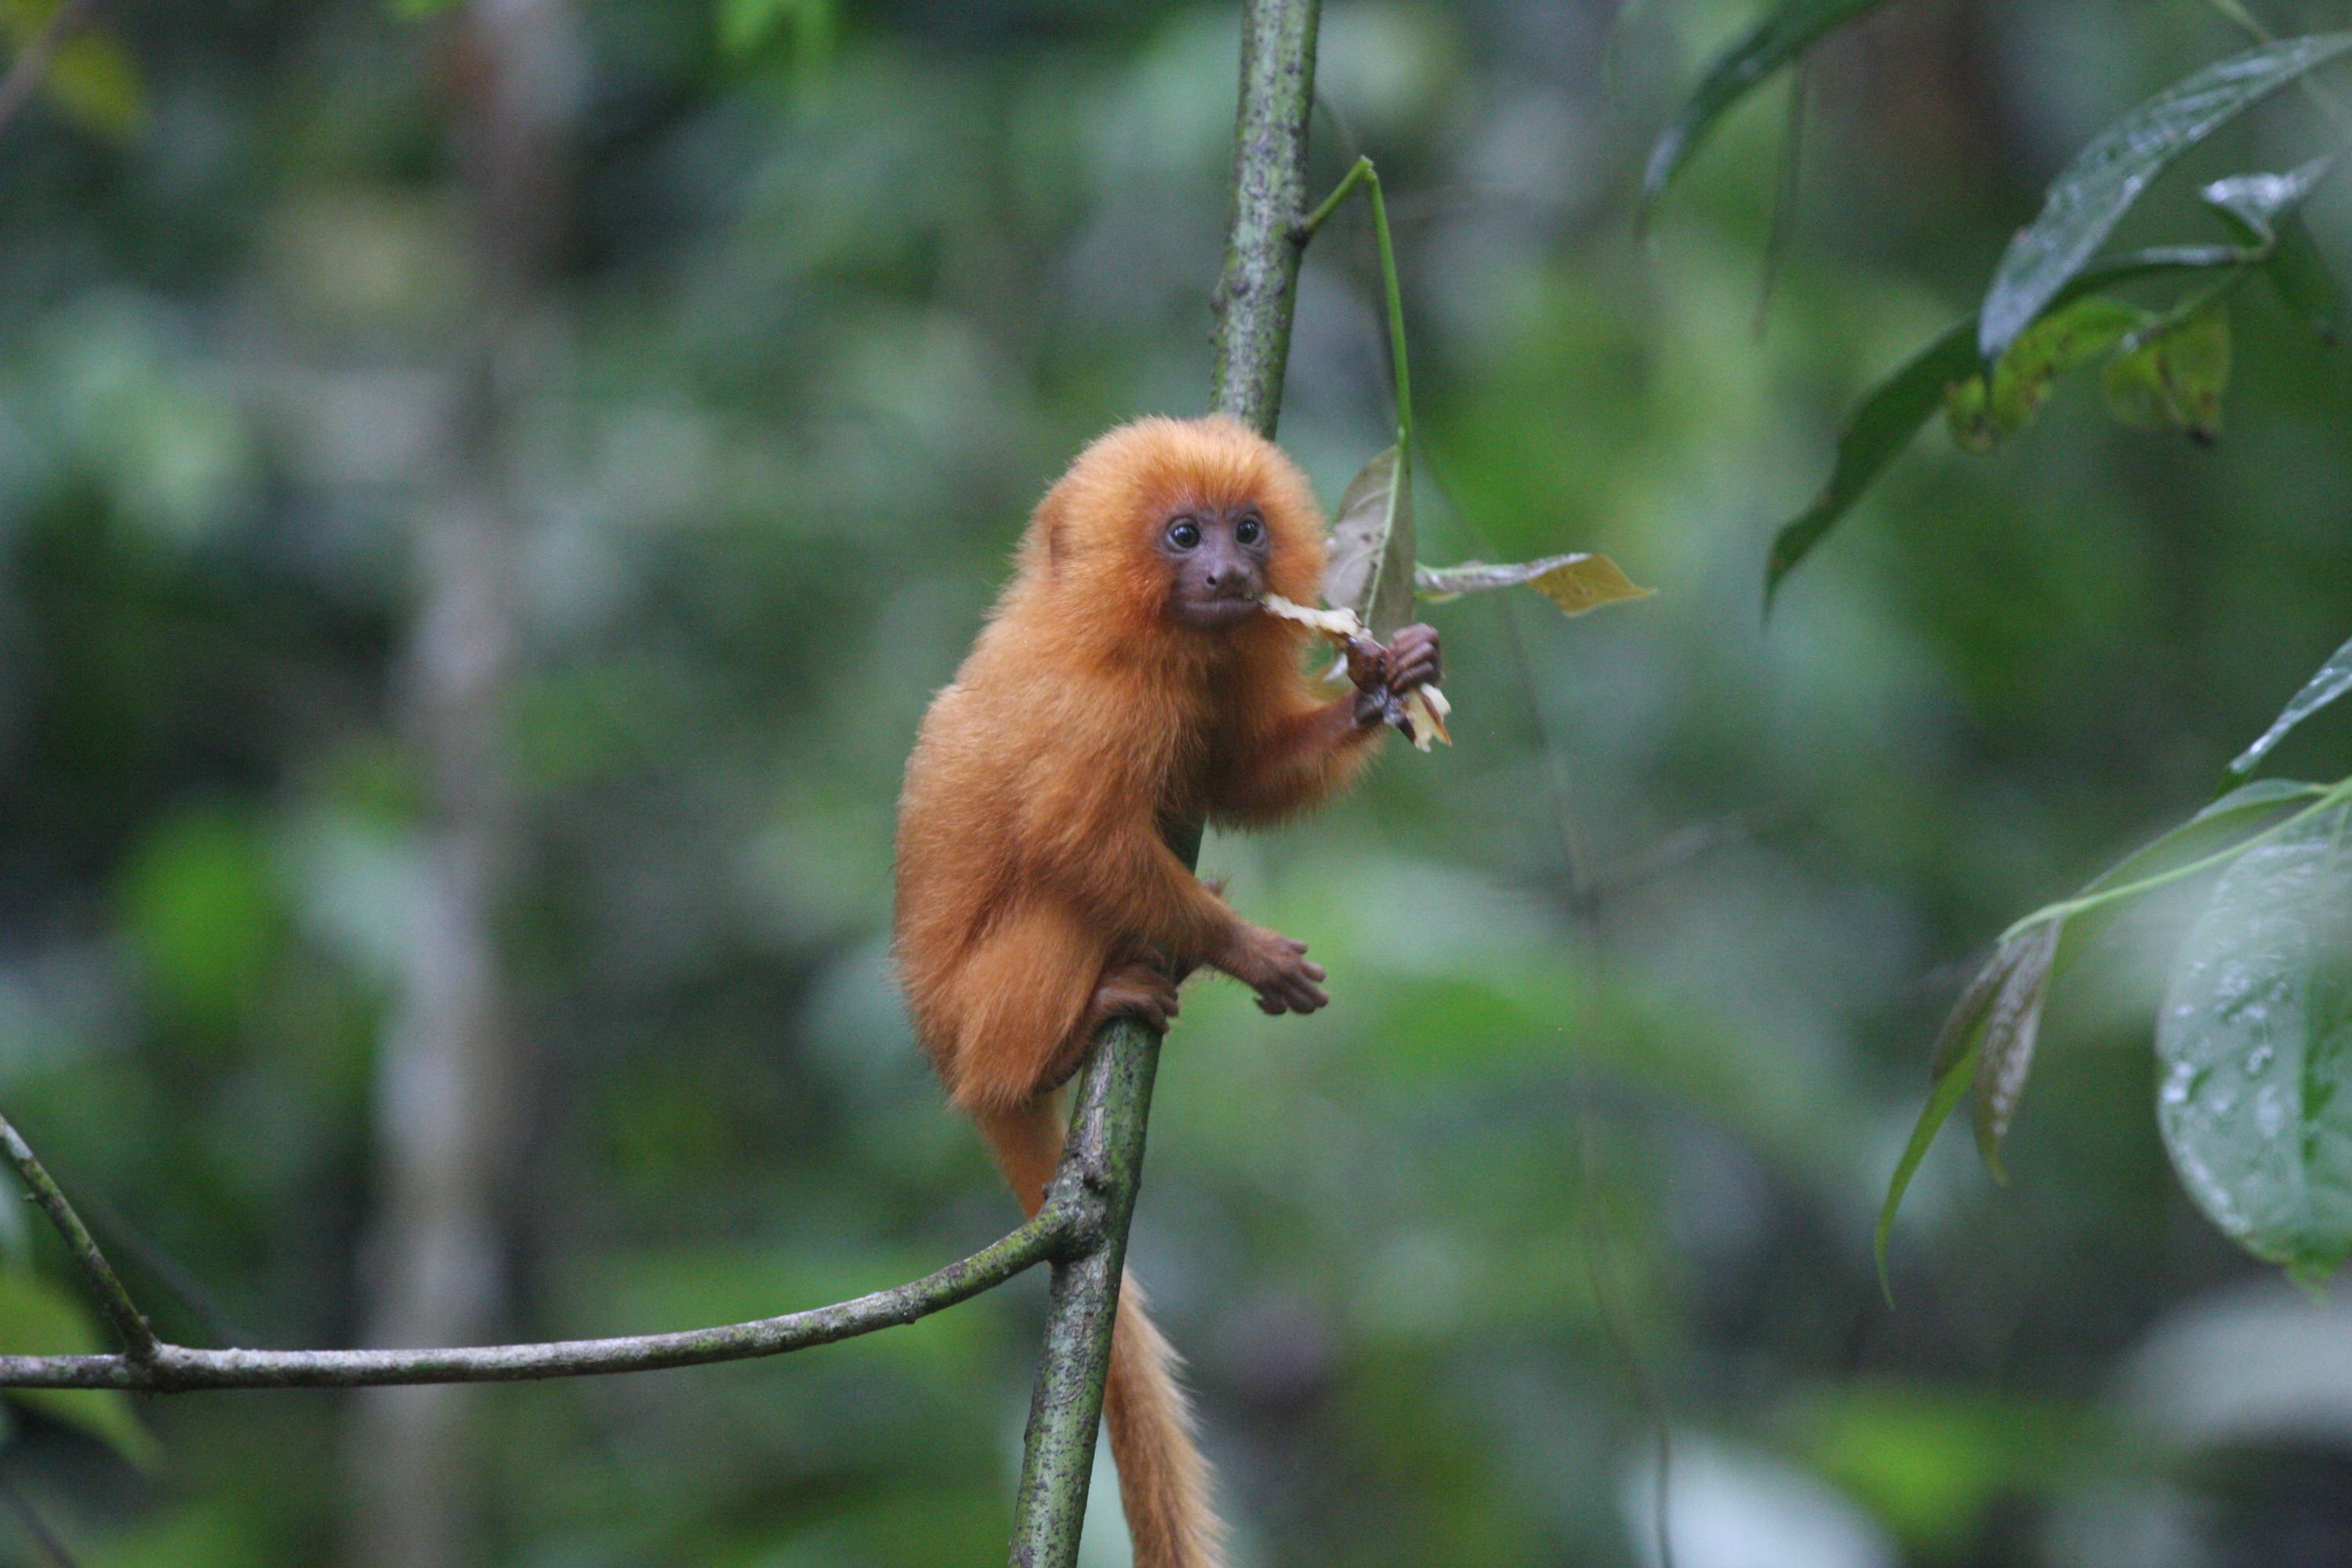 This is a baby golden lion tamarin. Once thought to be extinct, tamarin are a success story because biologists have helped set aside land for them. Species of plants and animals are going extinct 1,000 faster than they did before humans, with the world on the verge of a sixth great extinction, a new study says.